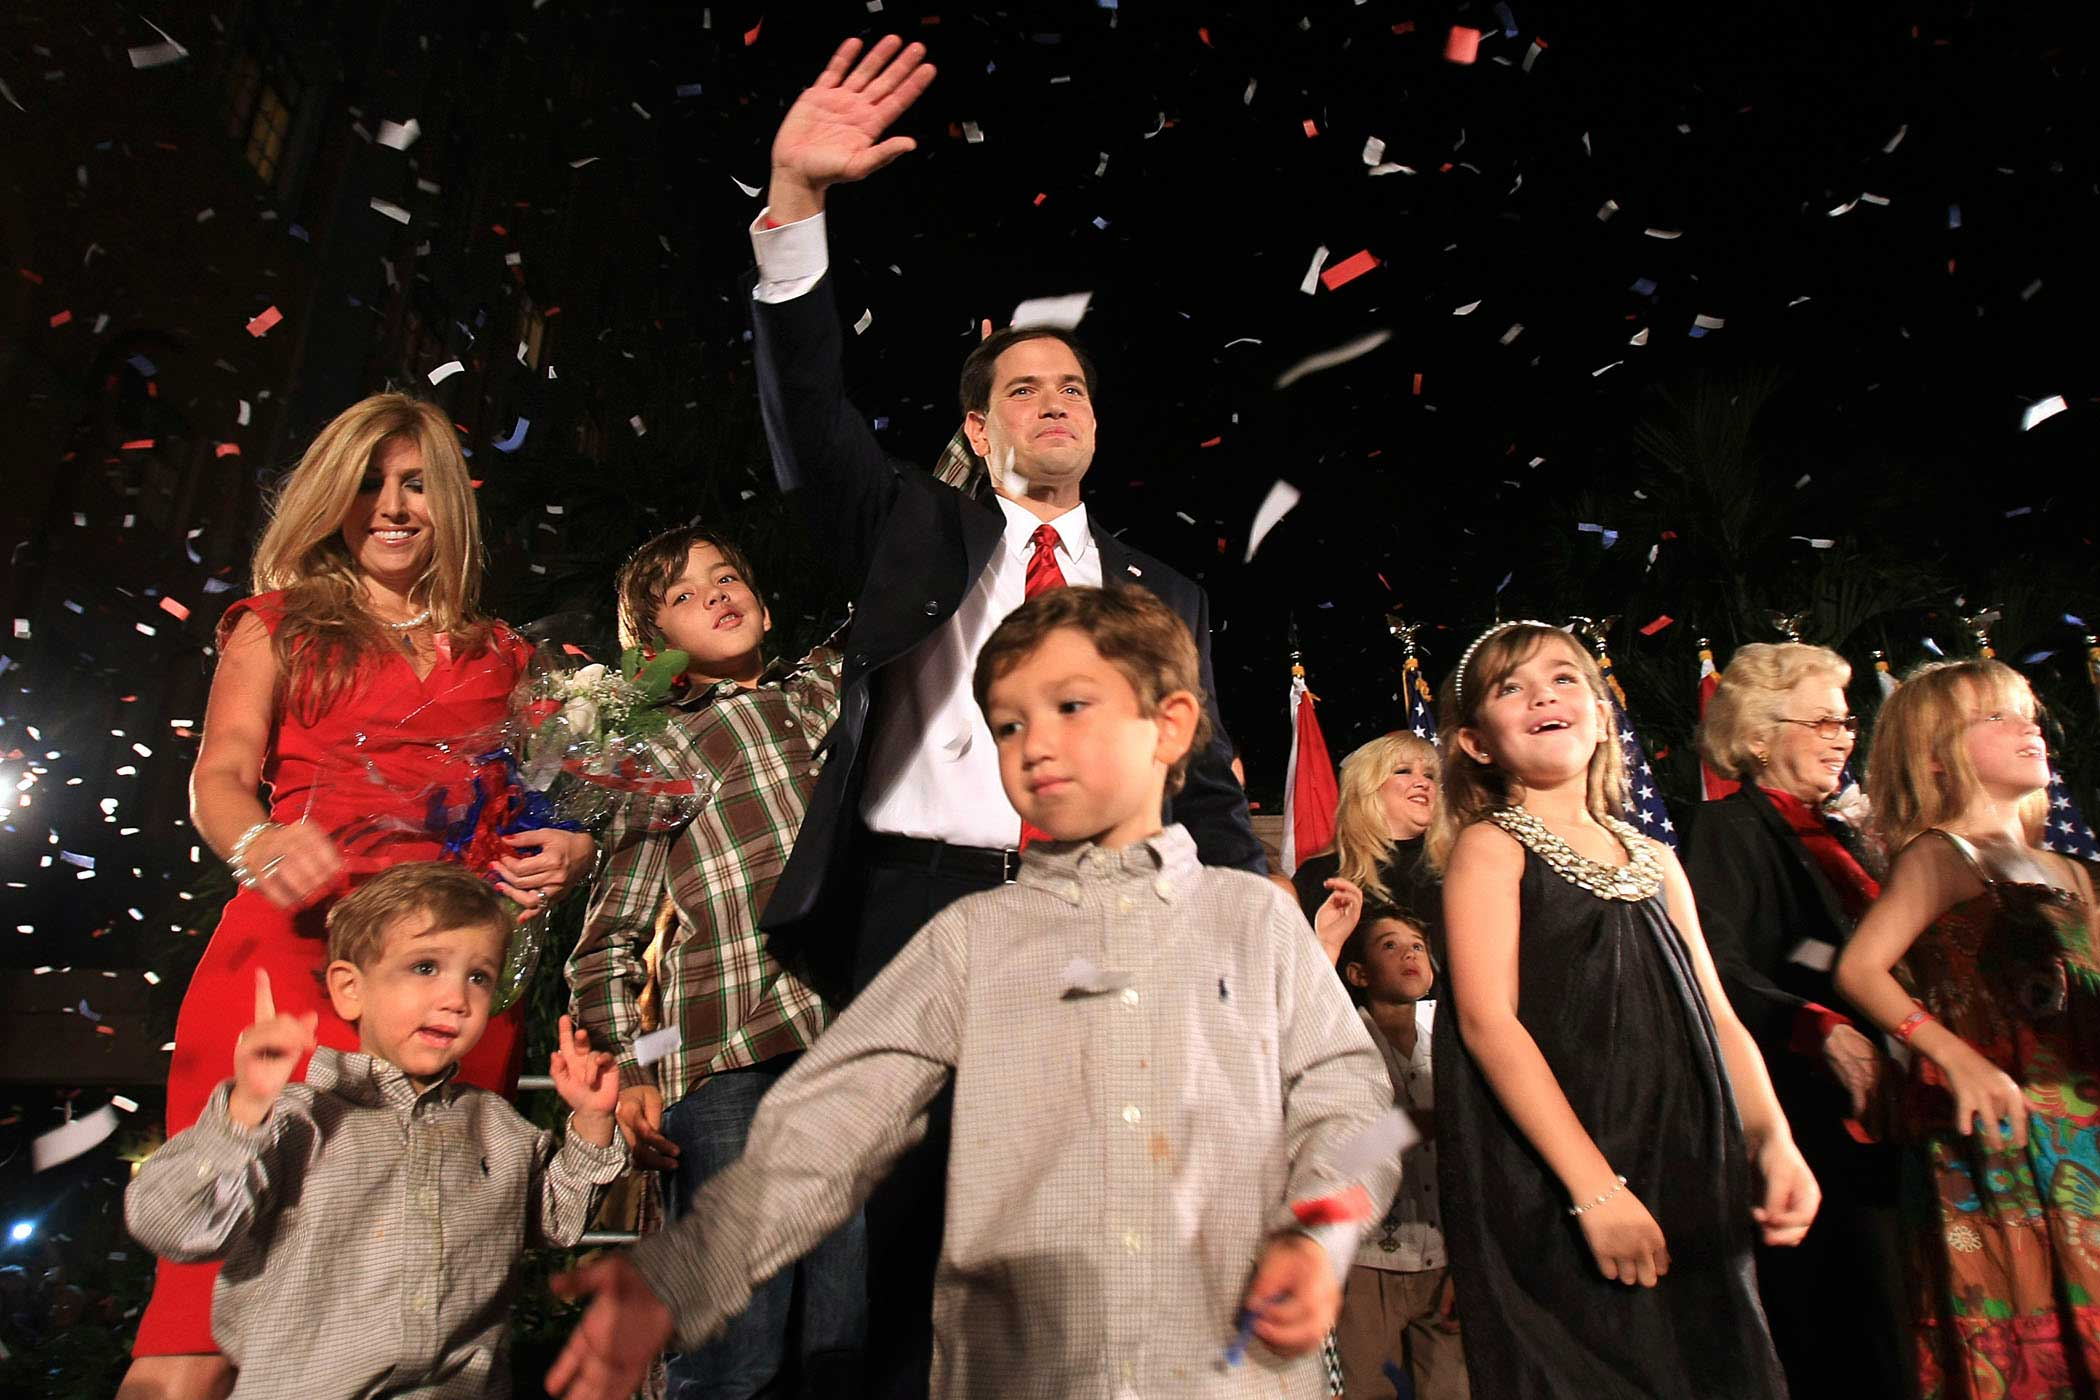 Then Florida Republican U.S. Senate nominee Marco Rubio celebrates with his family after winning the election in Coral Gables, Fla., on Nov. 2, 2010.